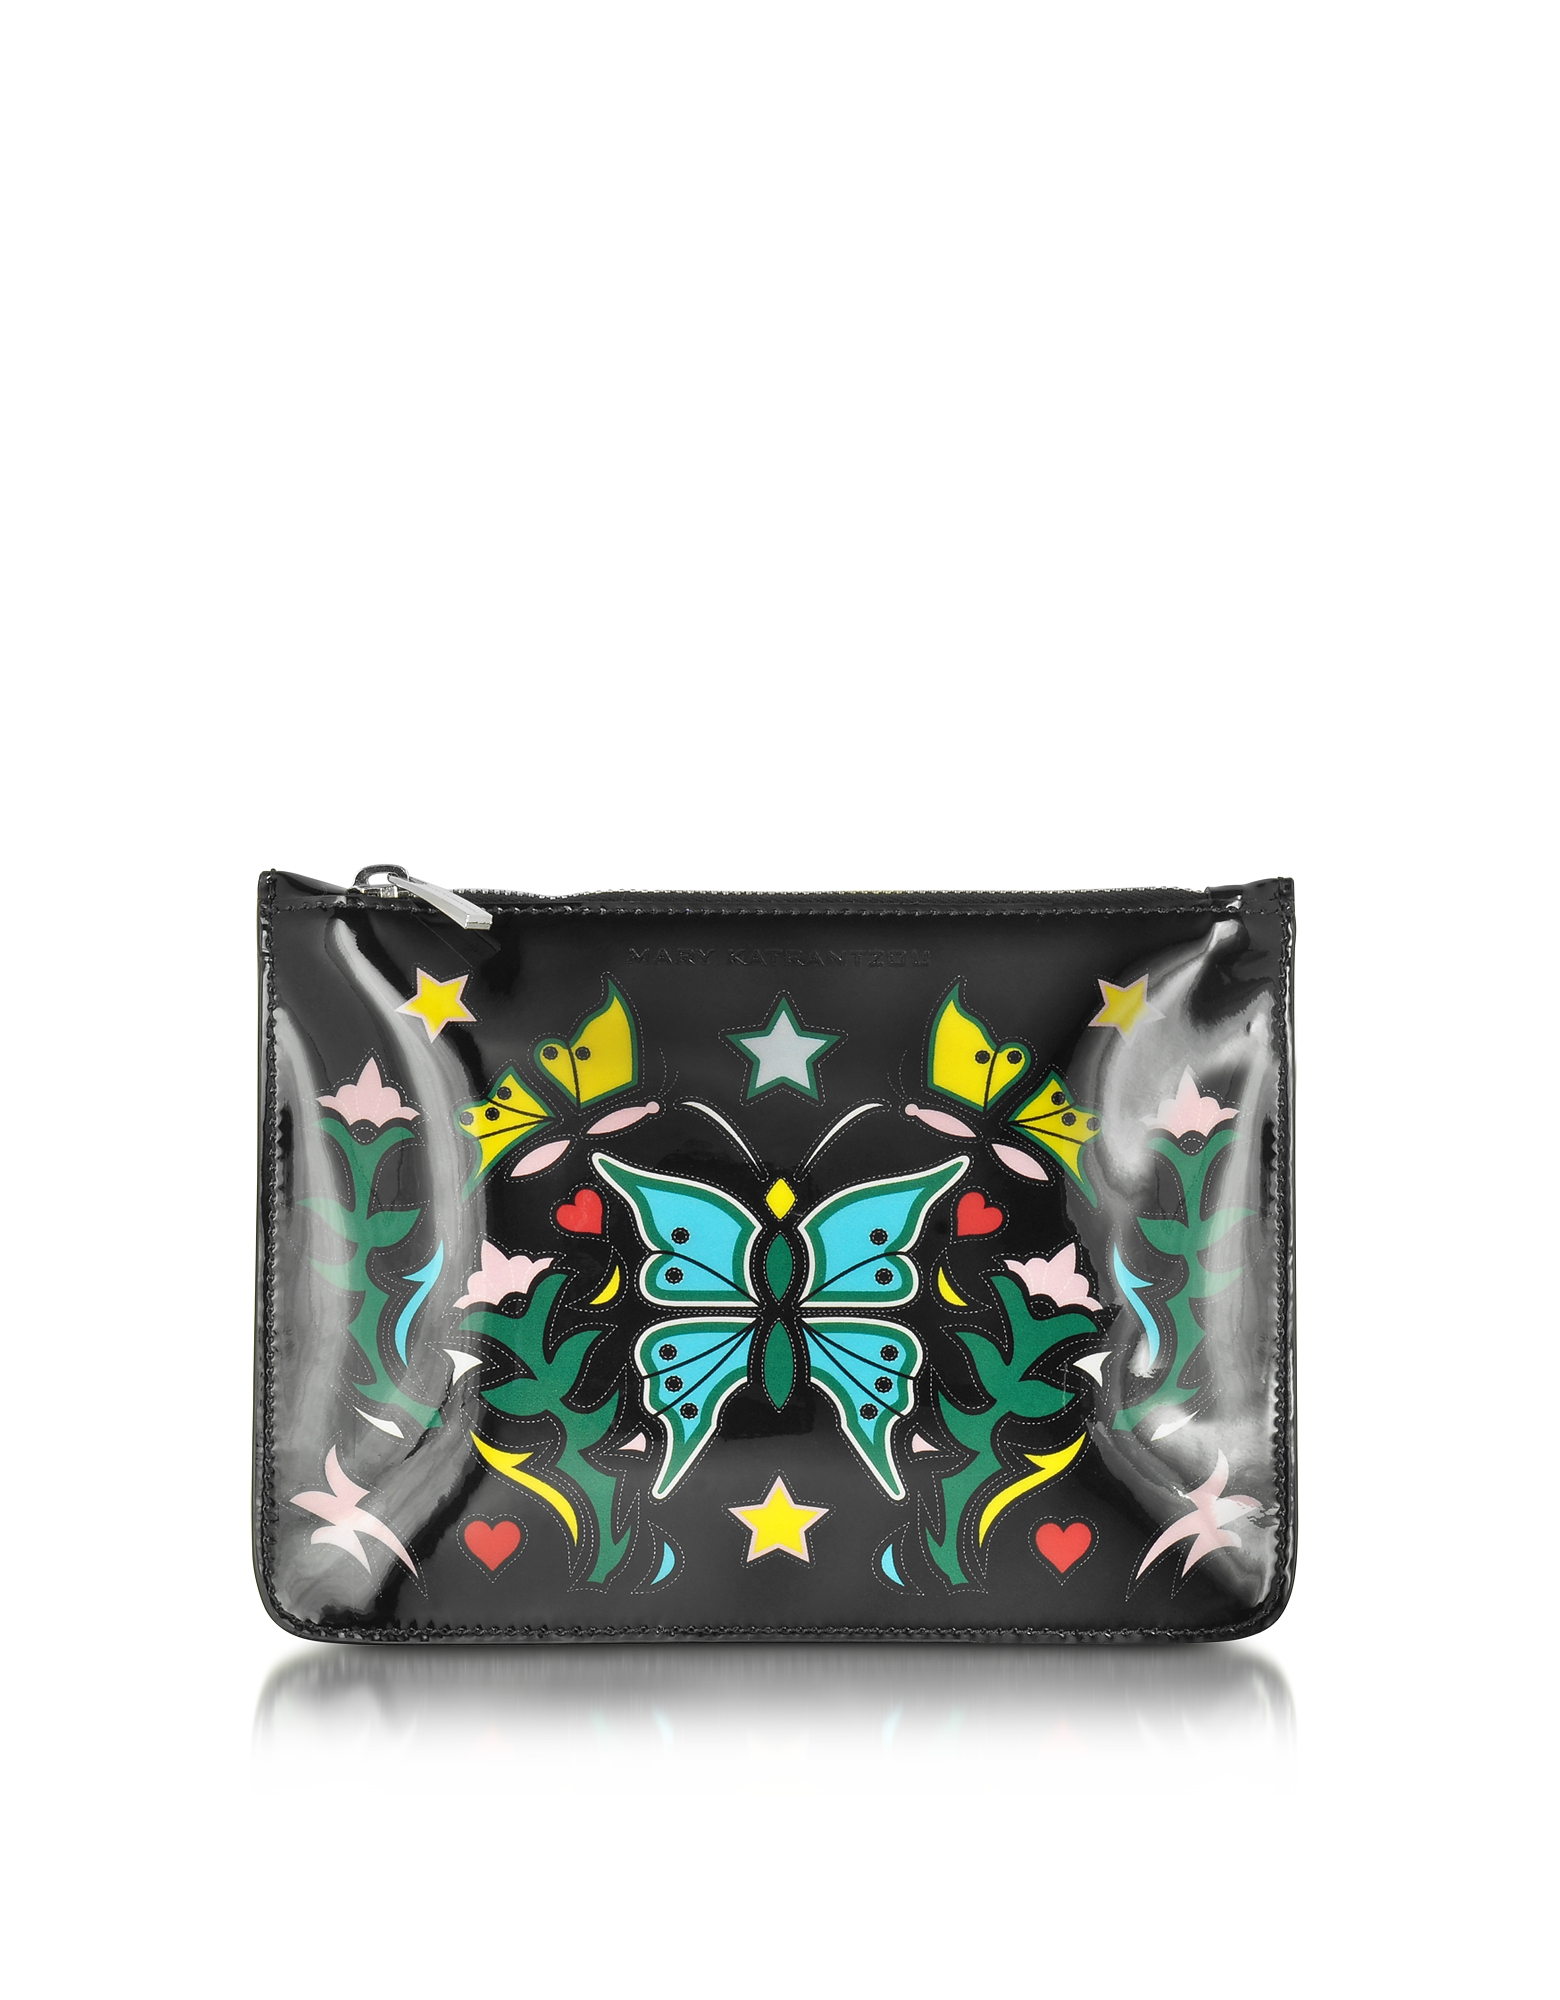 Mary Katrantzou Handbags, Graphic Butterfly Black Nappa Leather Pouch